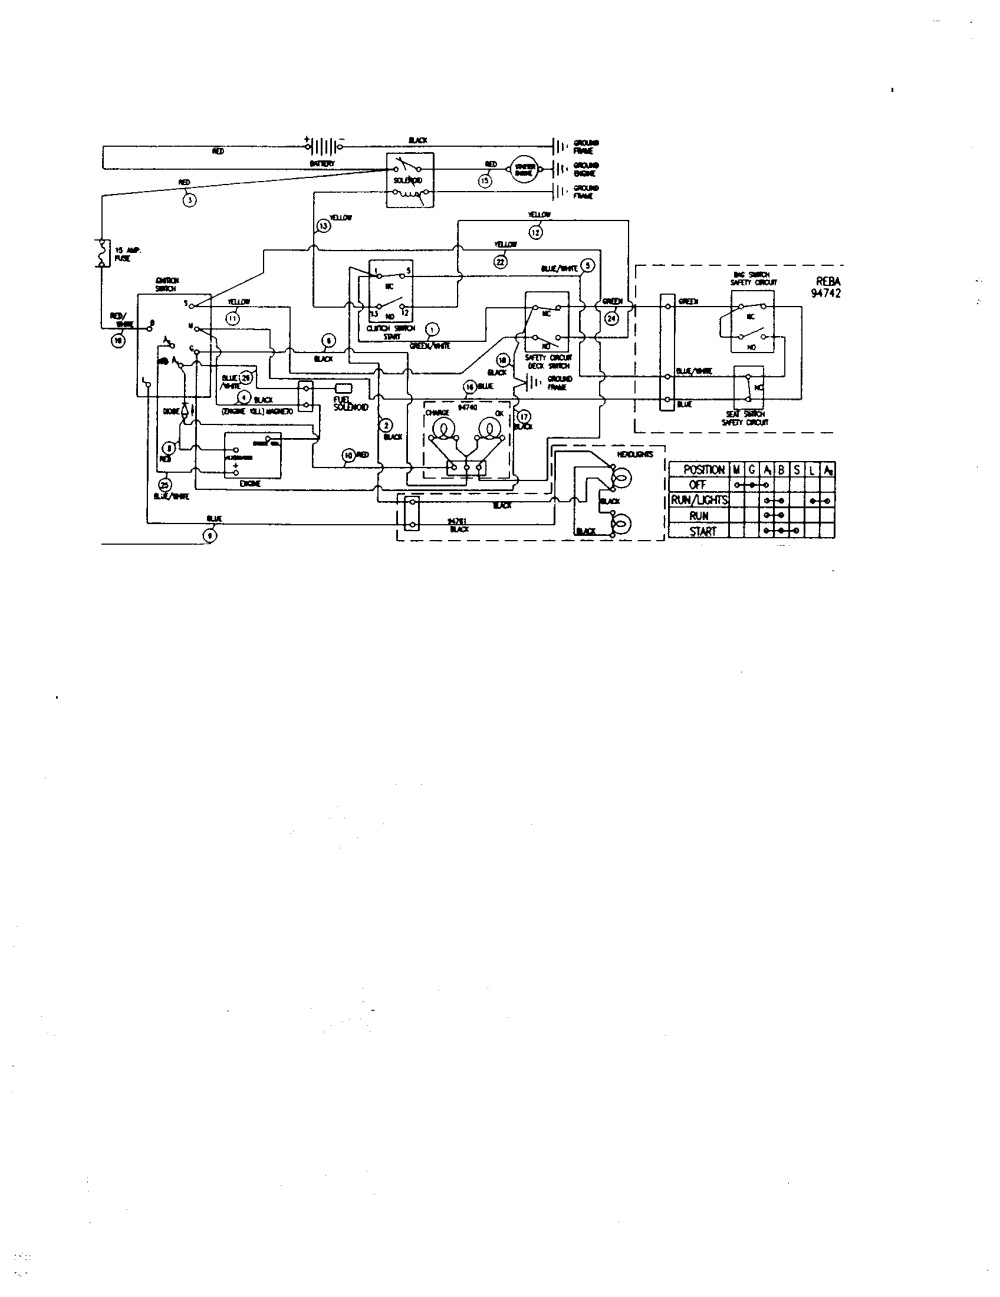 medium resolution of yard king 50562x89 schematic wiring diagram